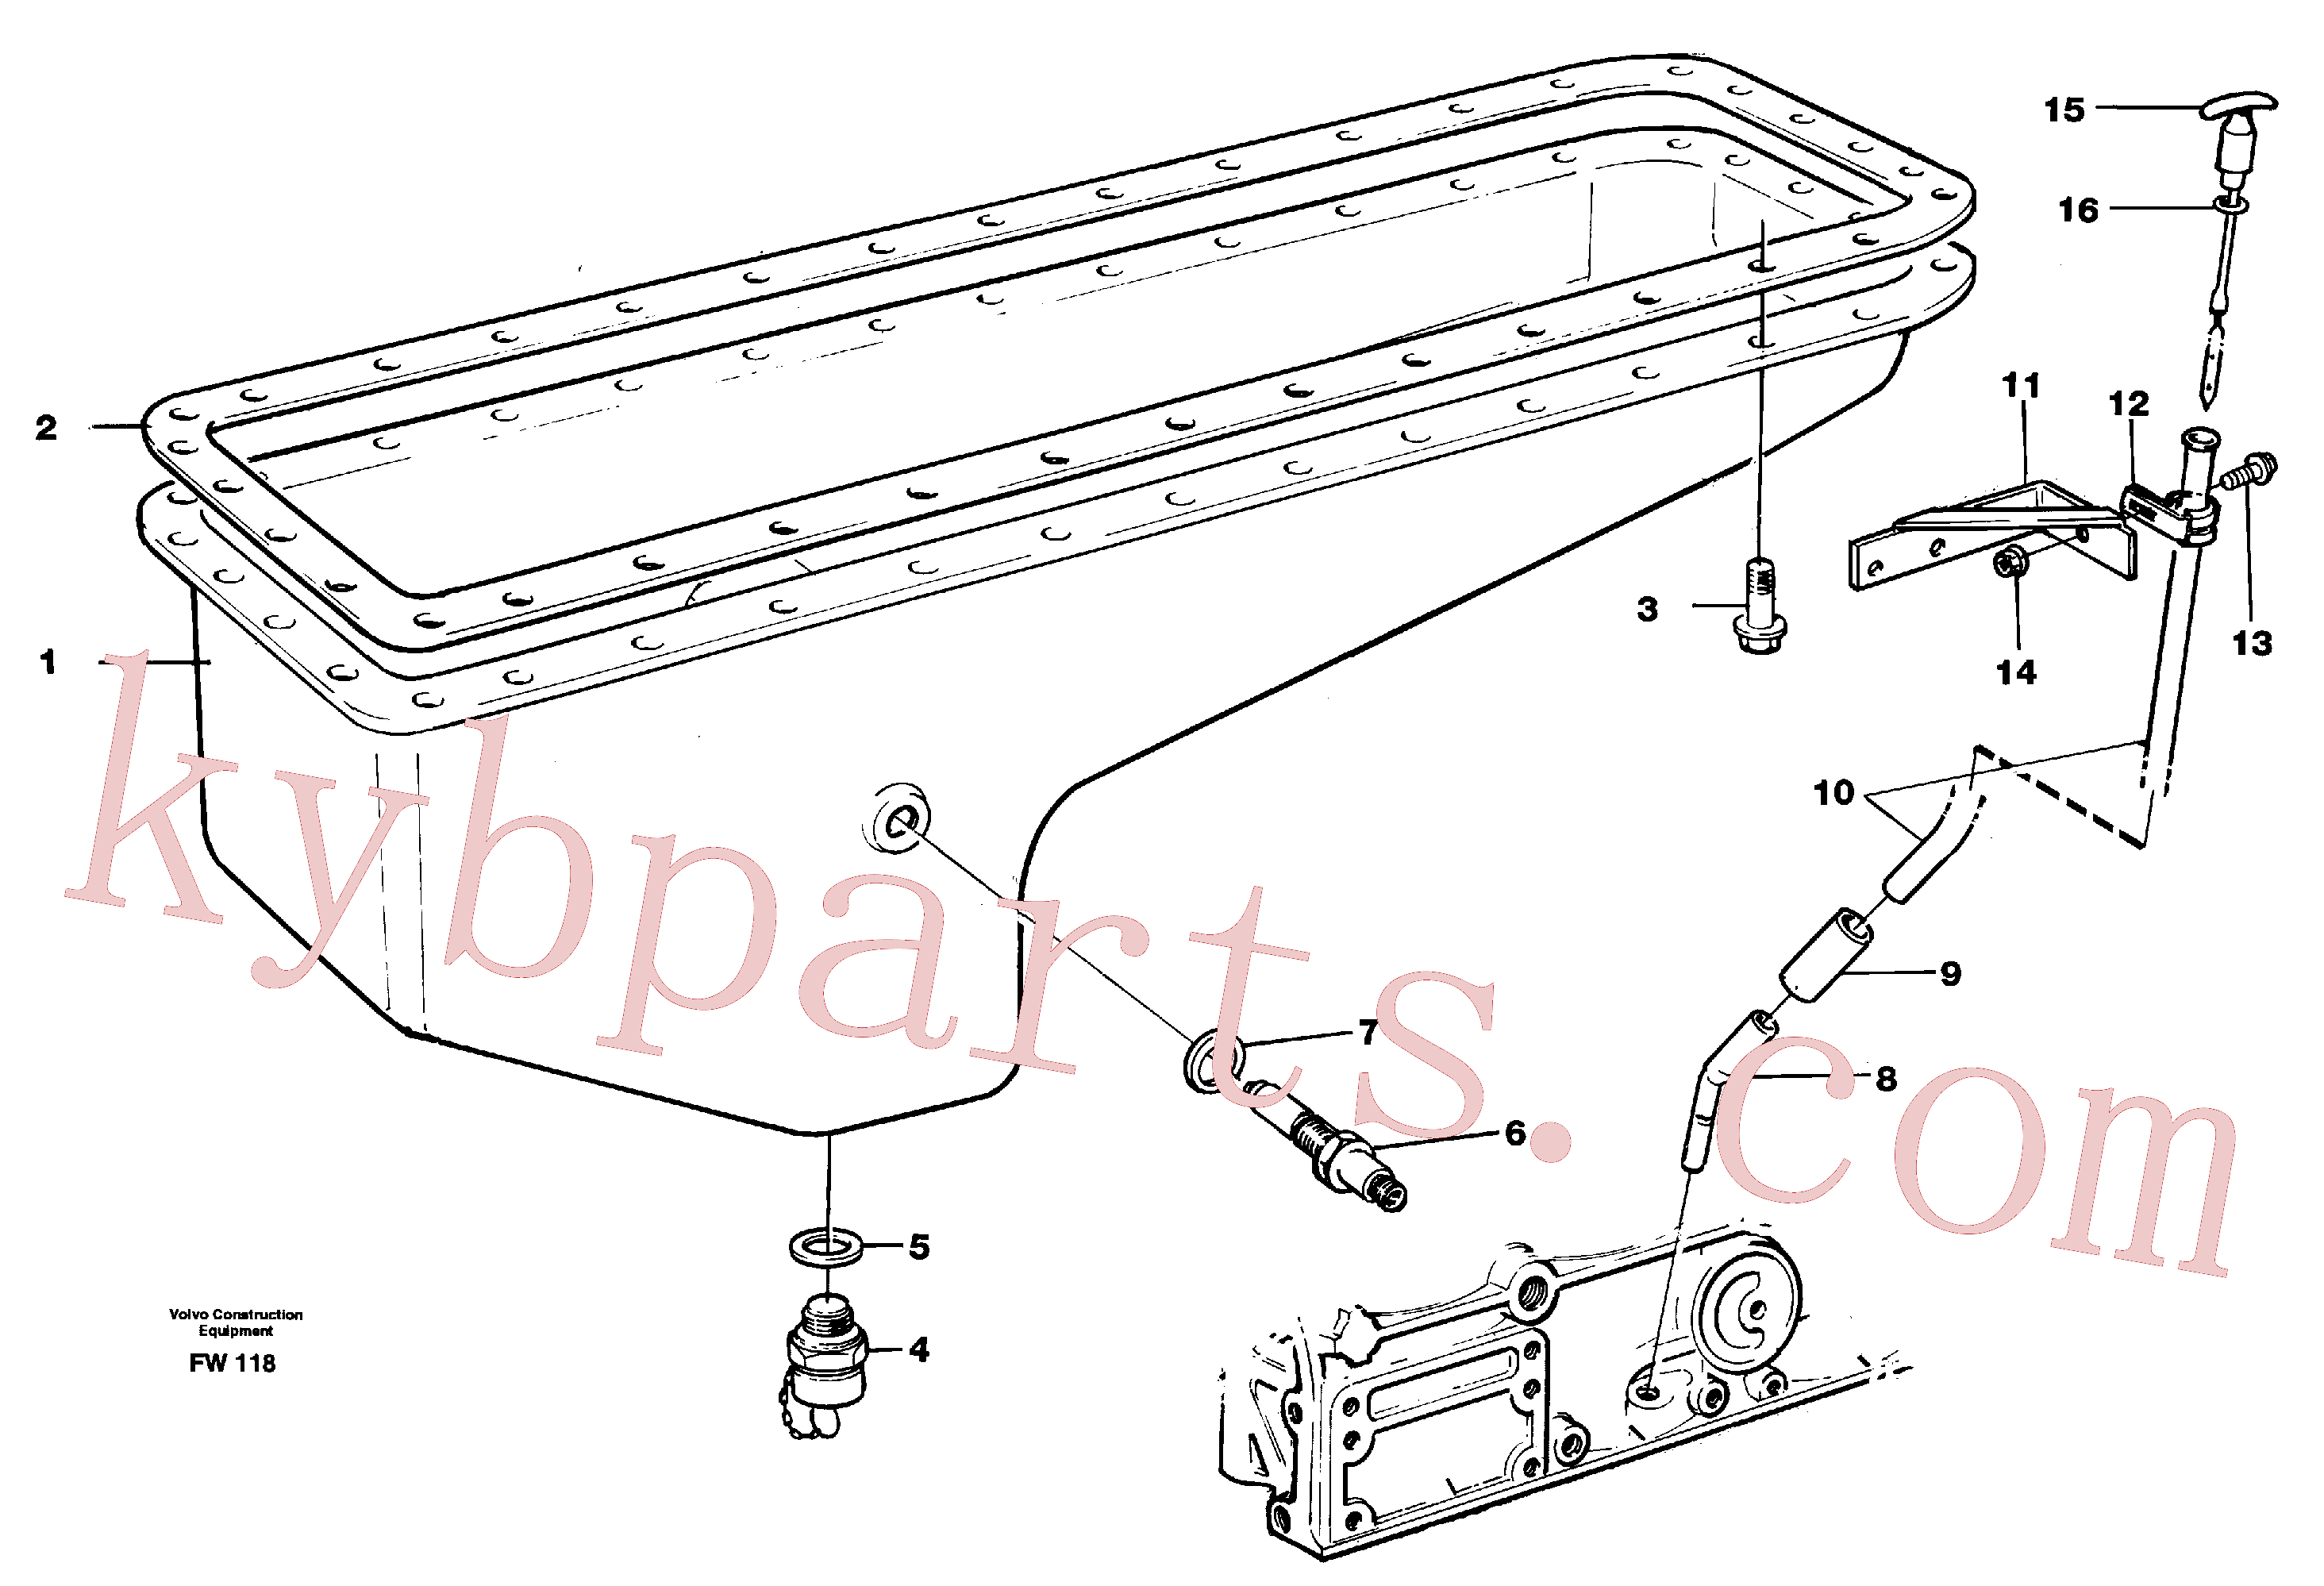 VOE944496 for Volvo Oil sump(FW118 assembly)